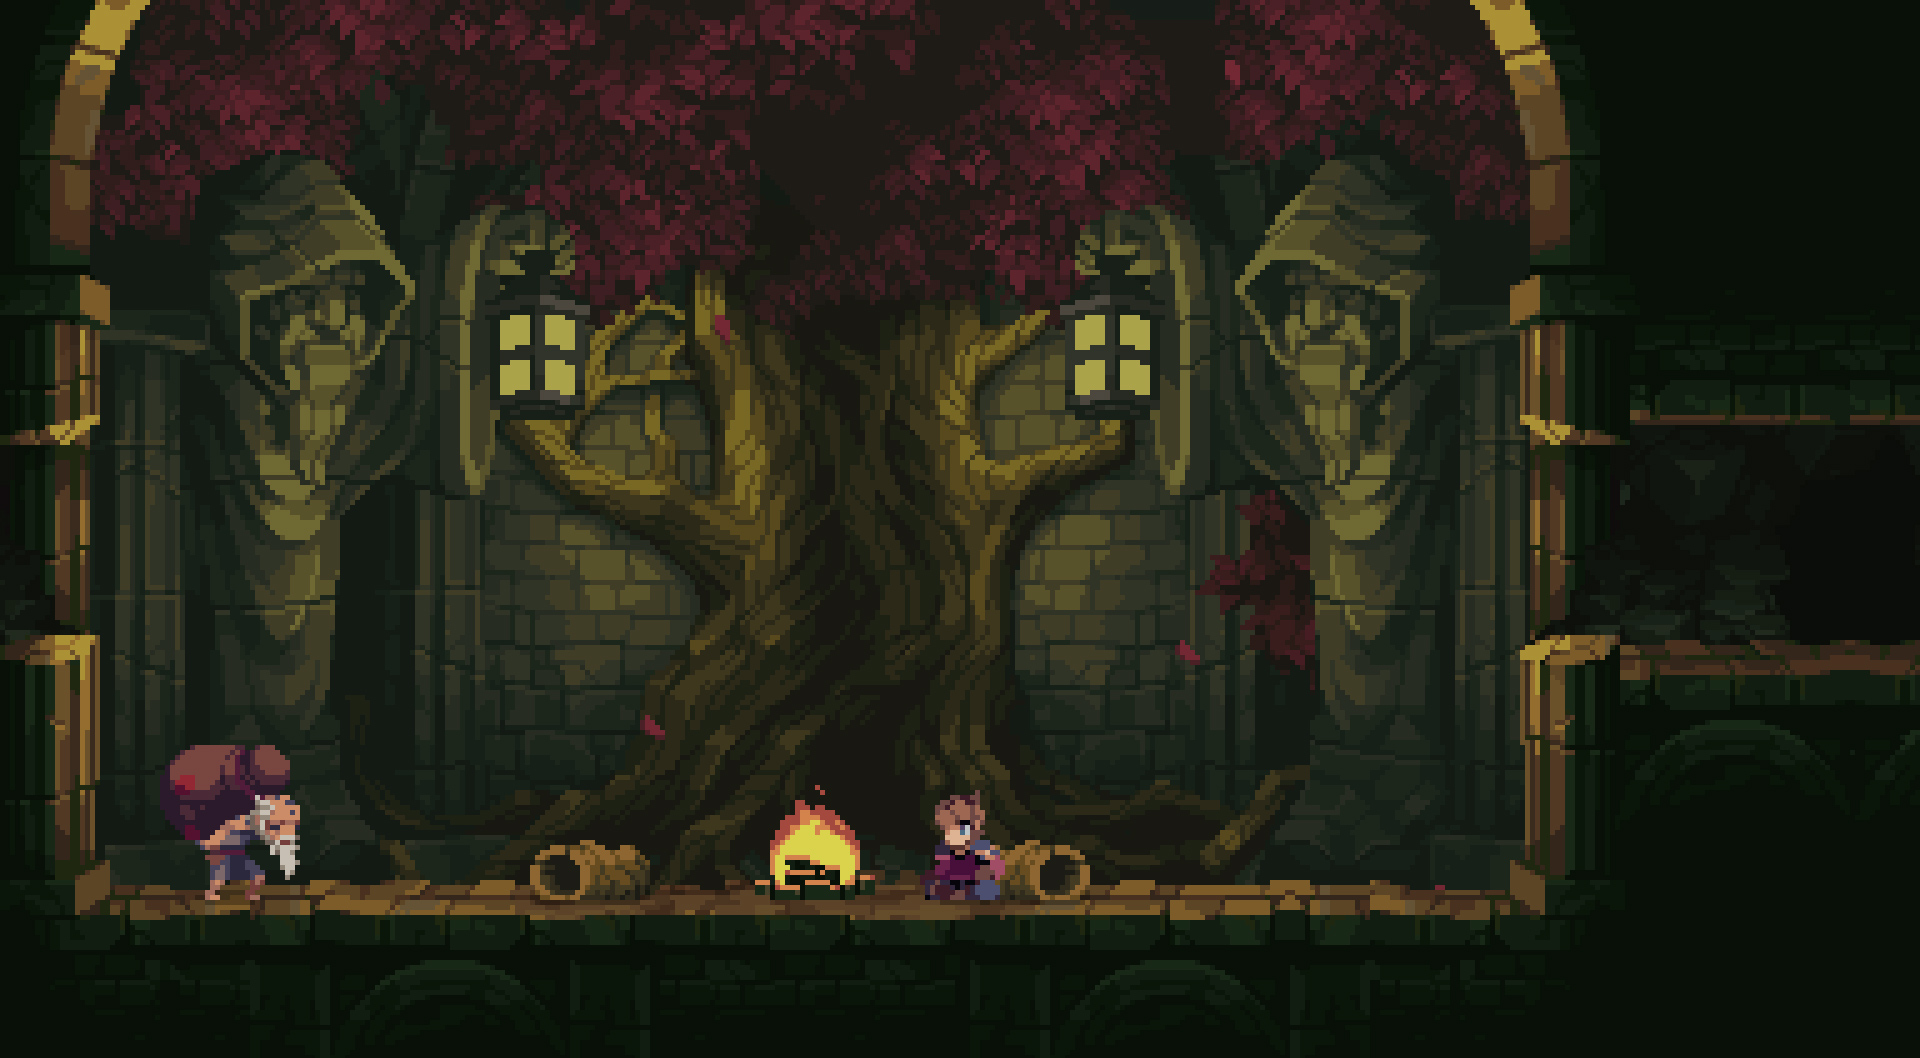 After five years and 72 Kickstarter updates, Chasm is finally coming this month screenshot